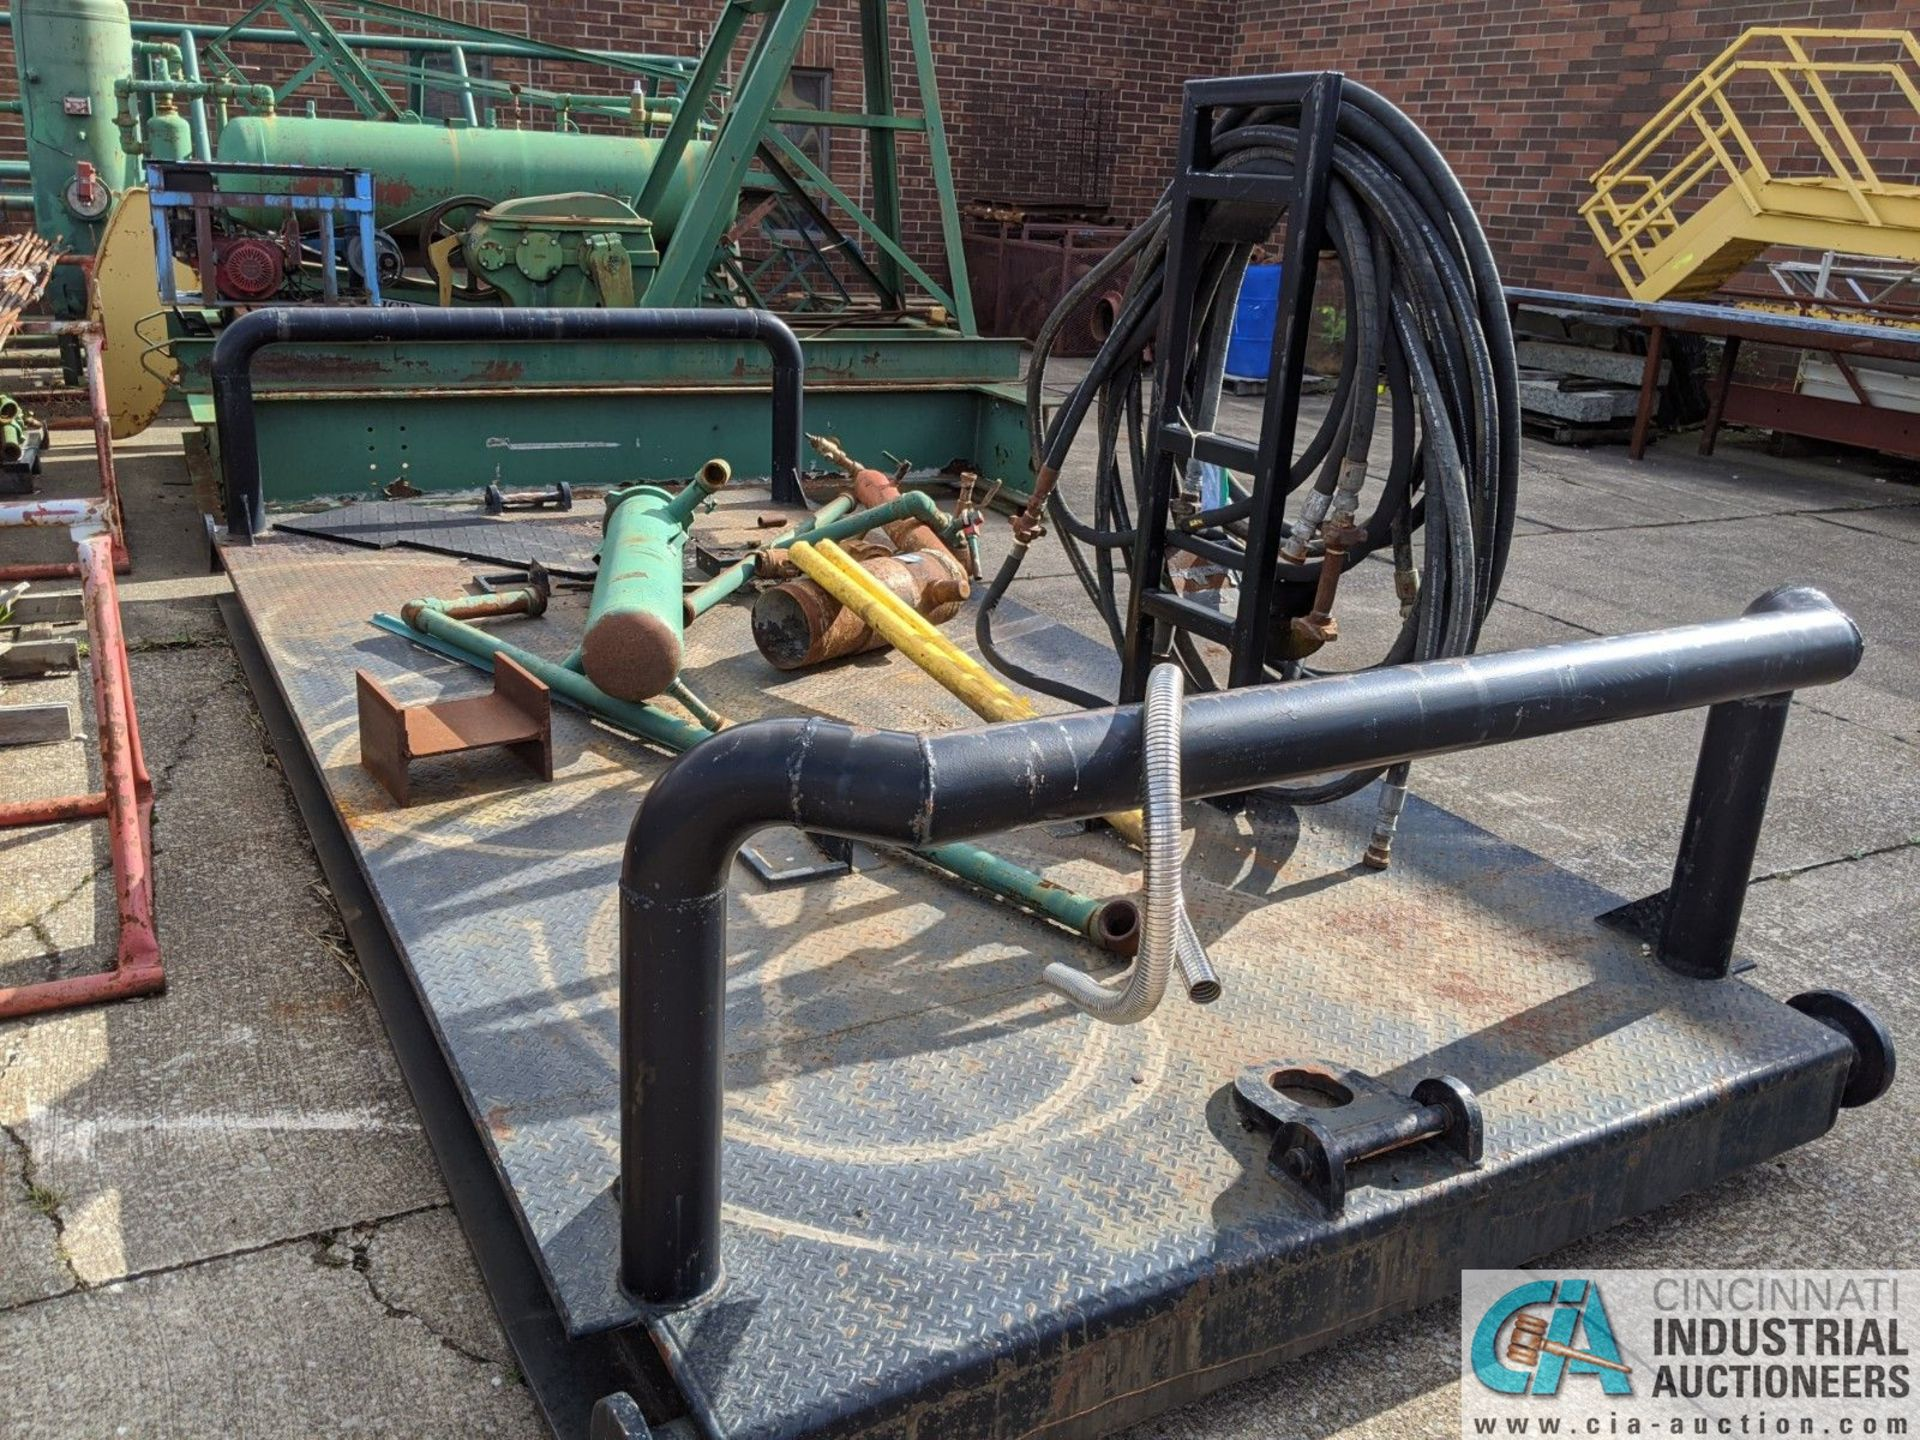 7' WIDE X 14' STEEL SKID (8635 East Ave., Mentor, OH 44060 - John Magnasum: 440-667-9414) - Image 2 of 3